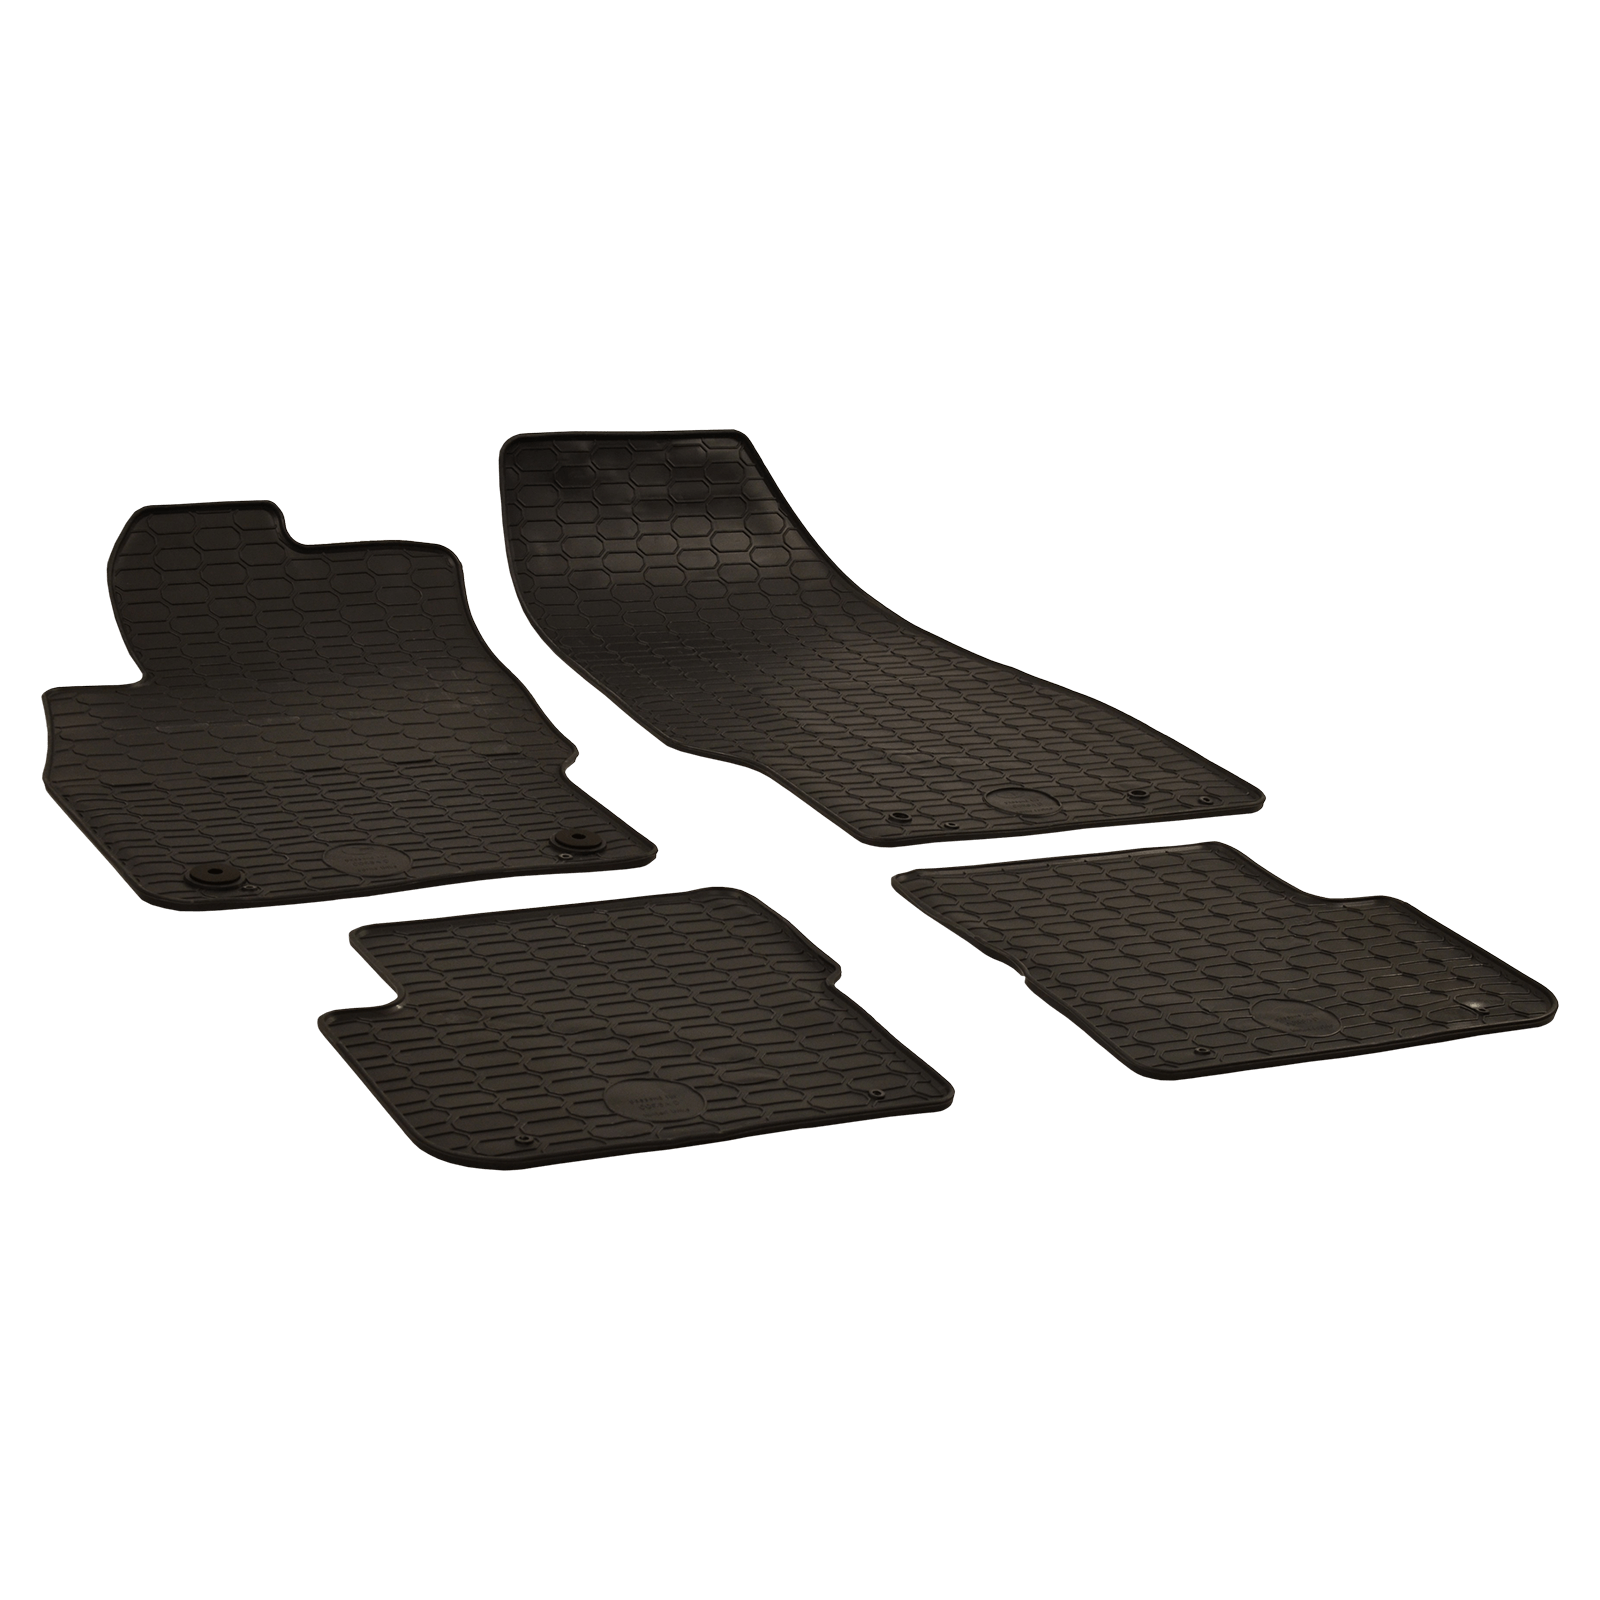 tapis de sol en caoutchouc anthracite pour opel corsa e van bj. Black Bedroom Furniture Sets. Home Design Ideas